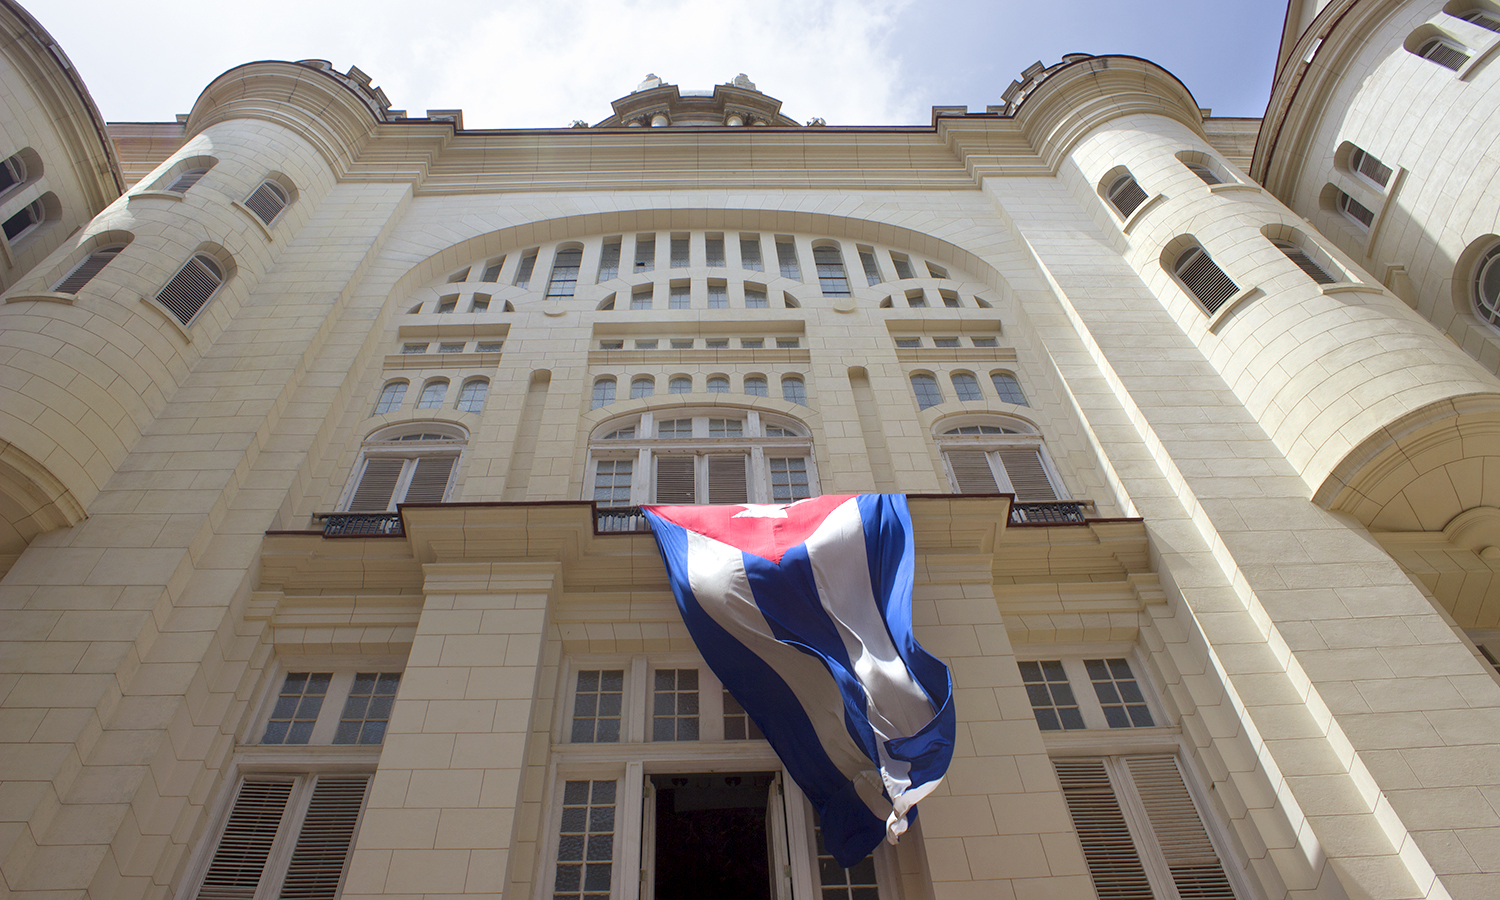 The Cuban flag hangs above the entrance to the Museum of the Revolution, the building that was once the Presidents Palace in Old Havana.